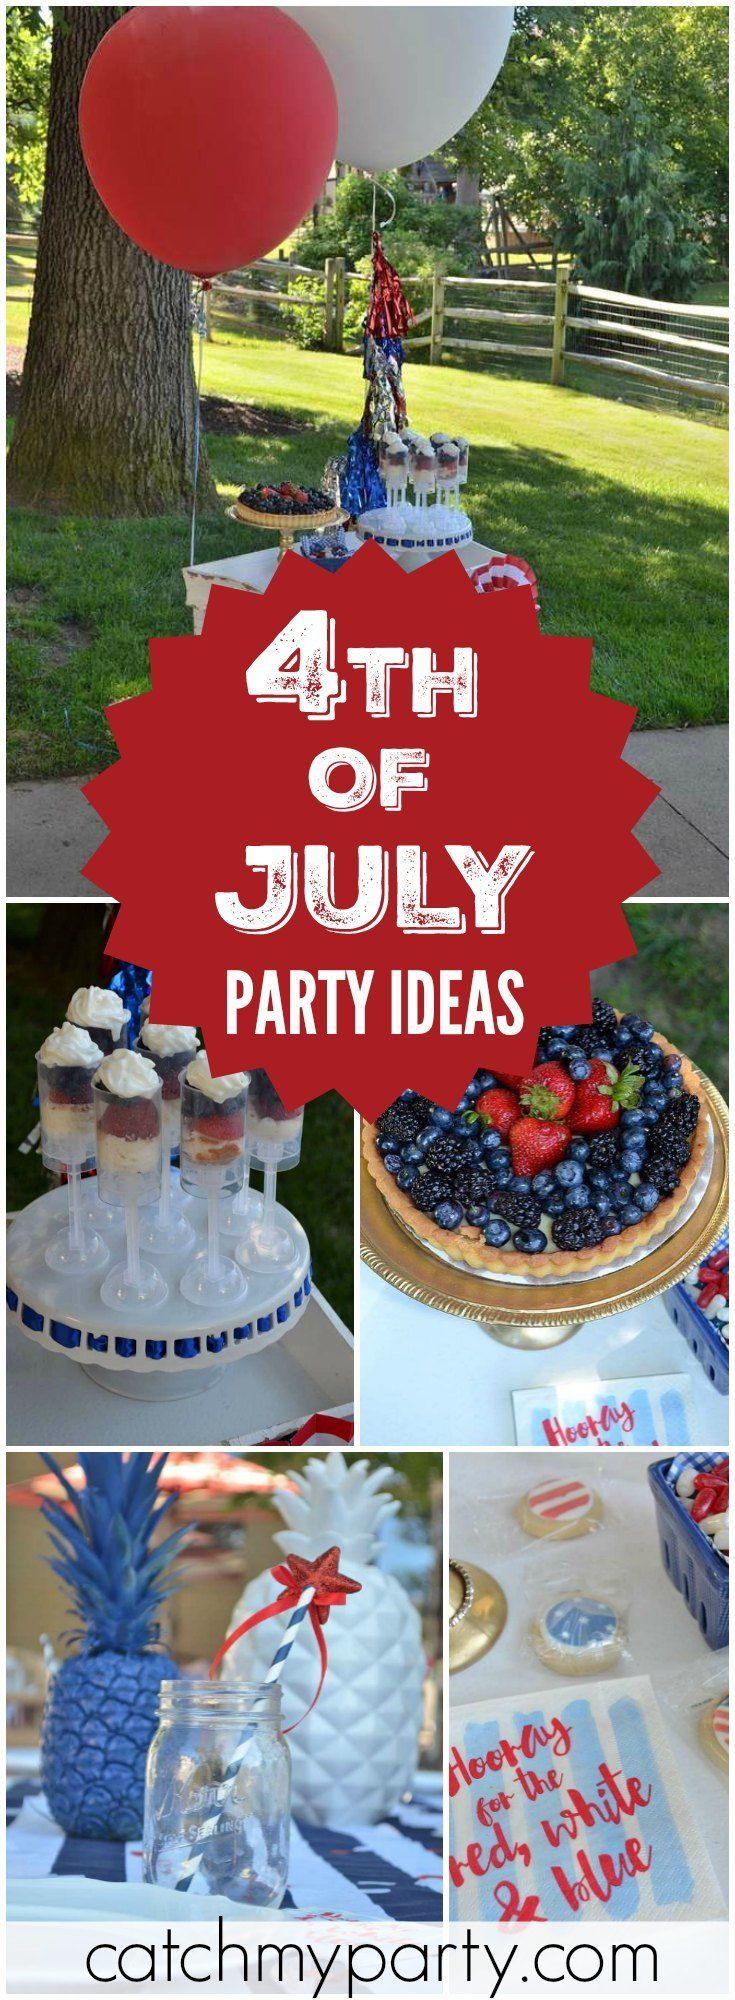 413 best July 4th Party Ideas images on Pinterest | July 4th ...